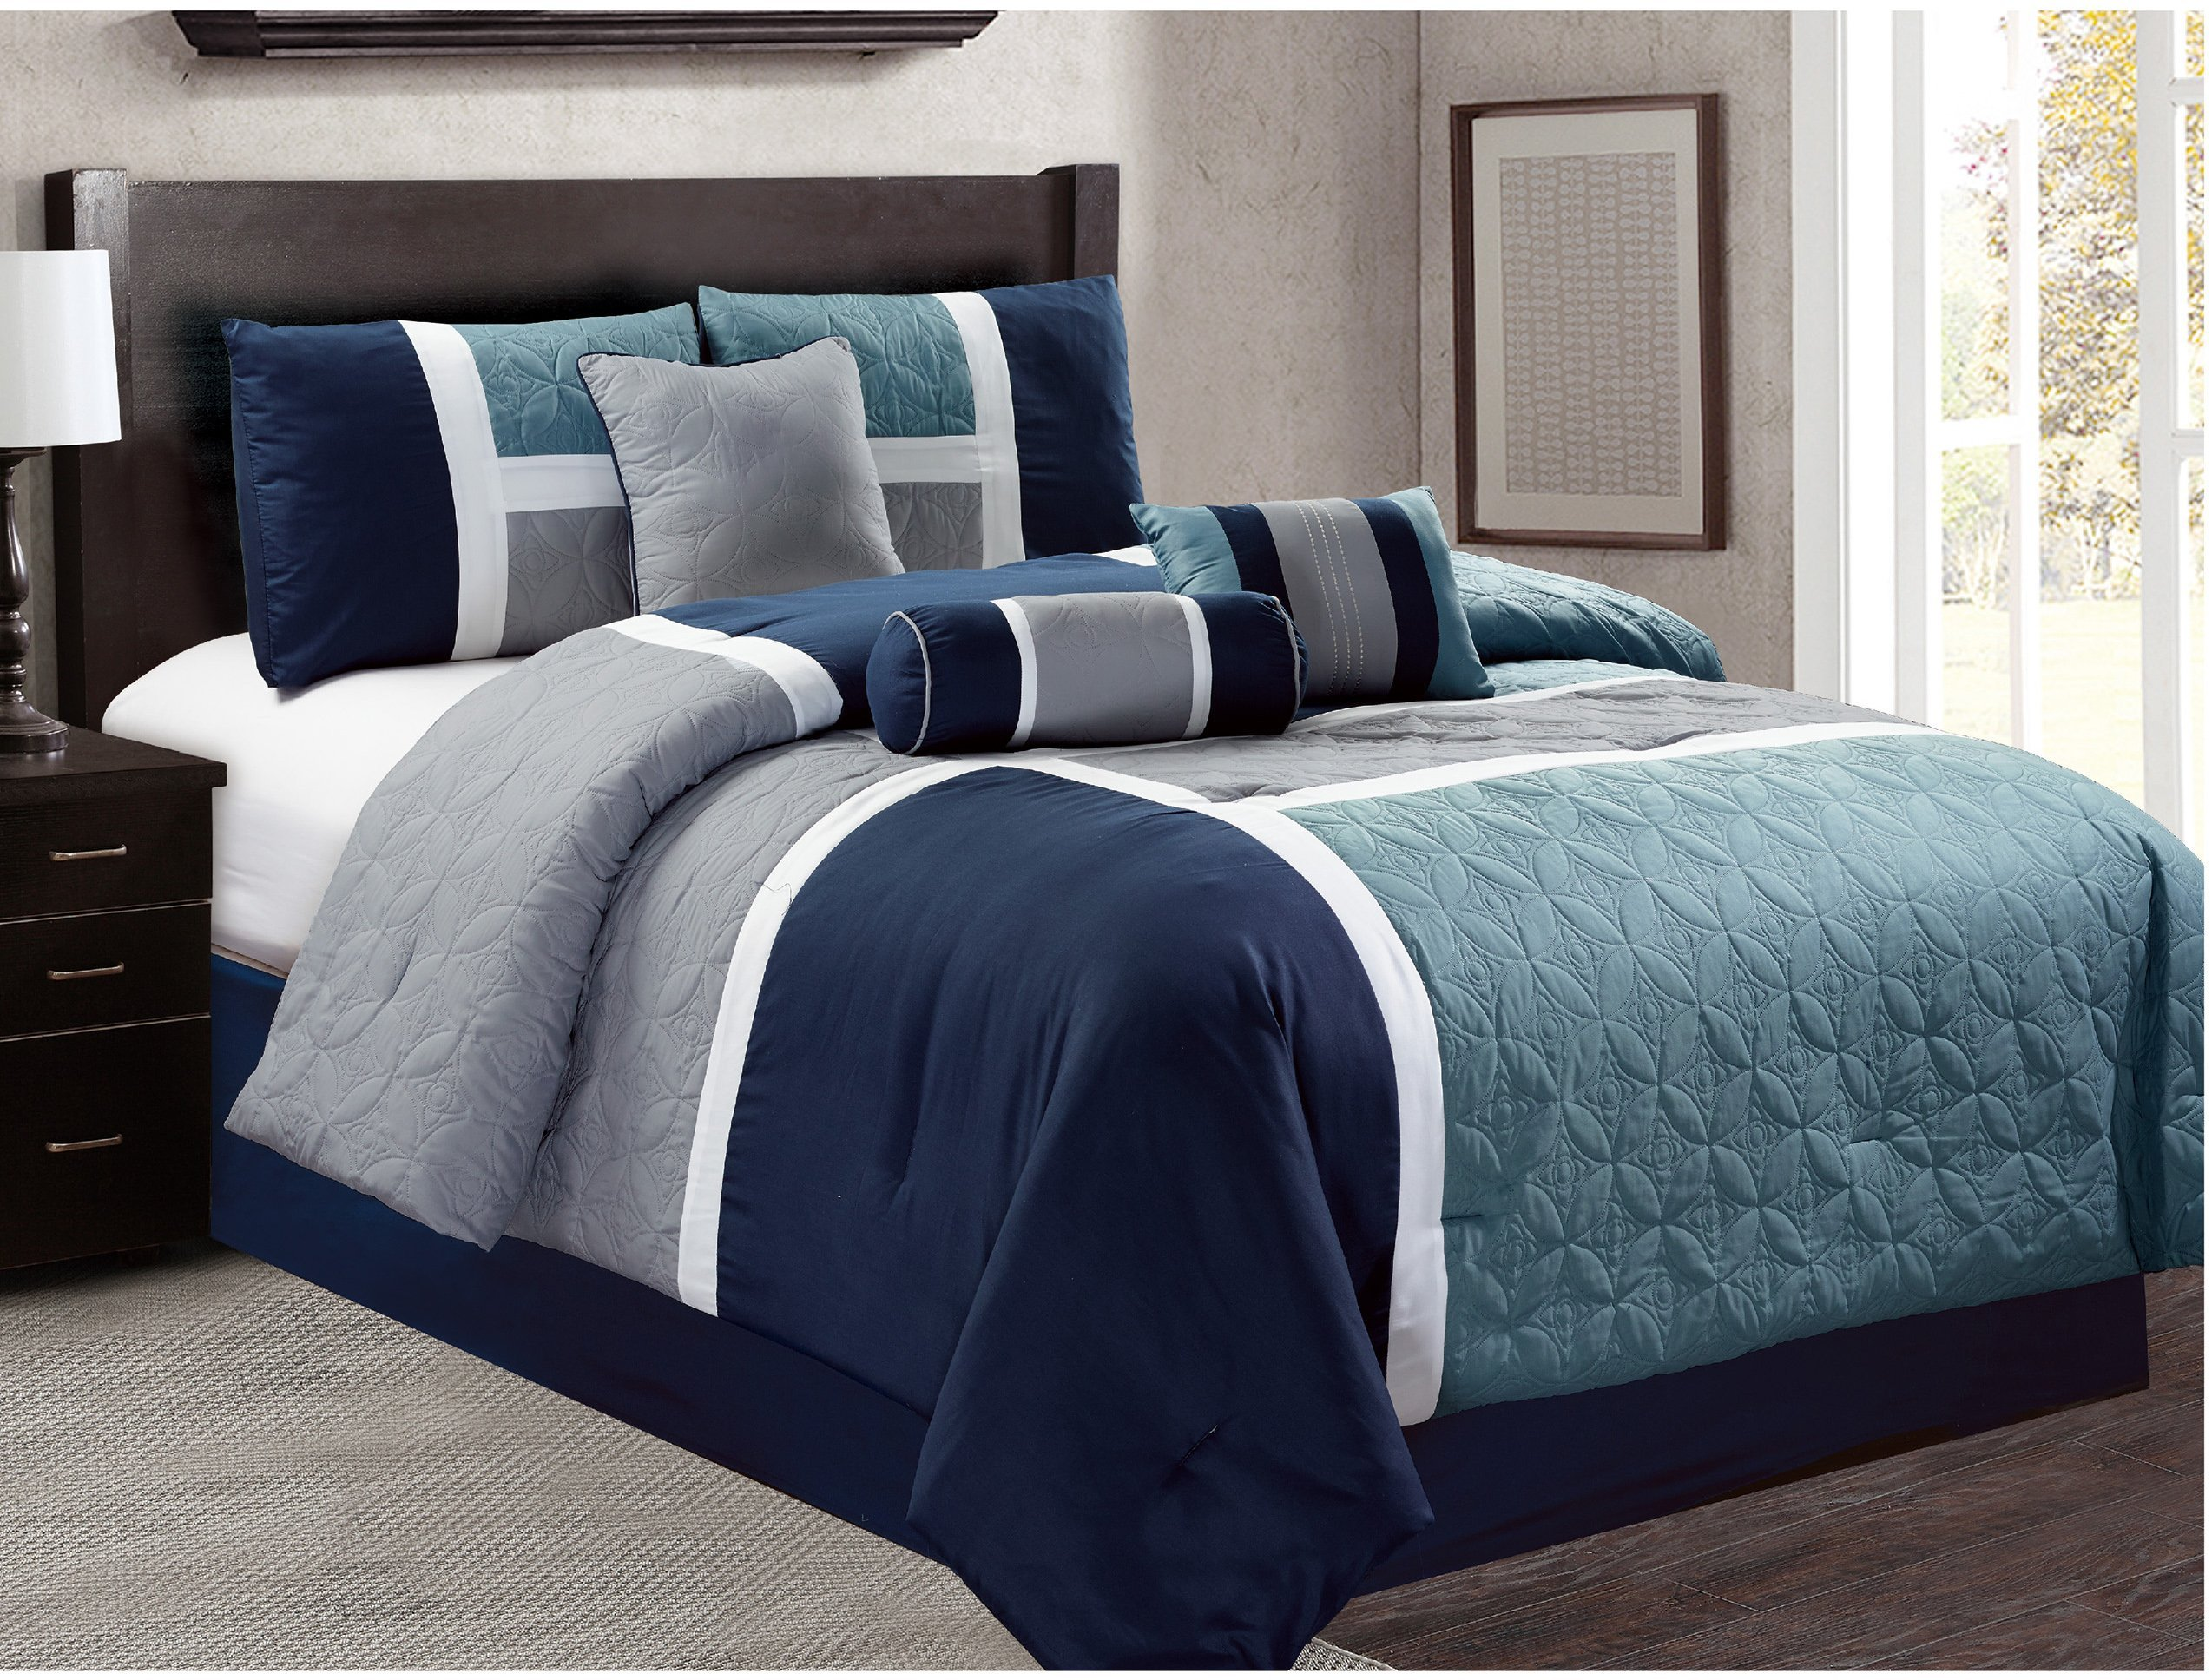 Luxlen 7 Piece Luxury Bed in Bag Comforter Set, Closeout, Queen, Navy